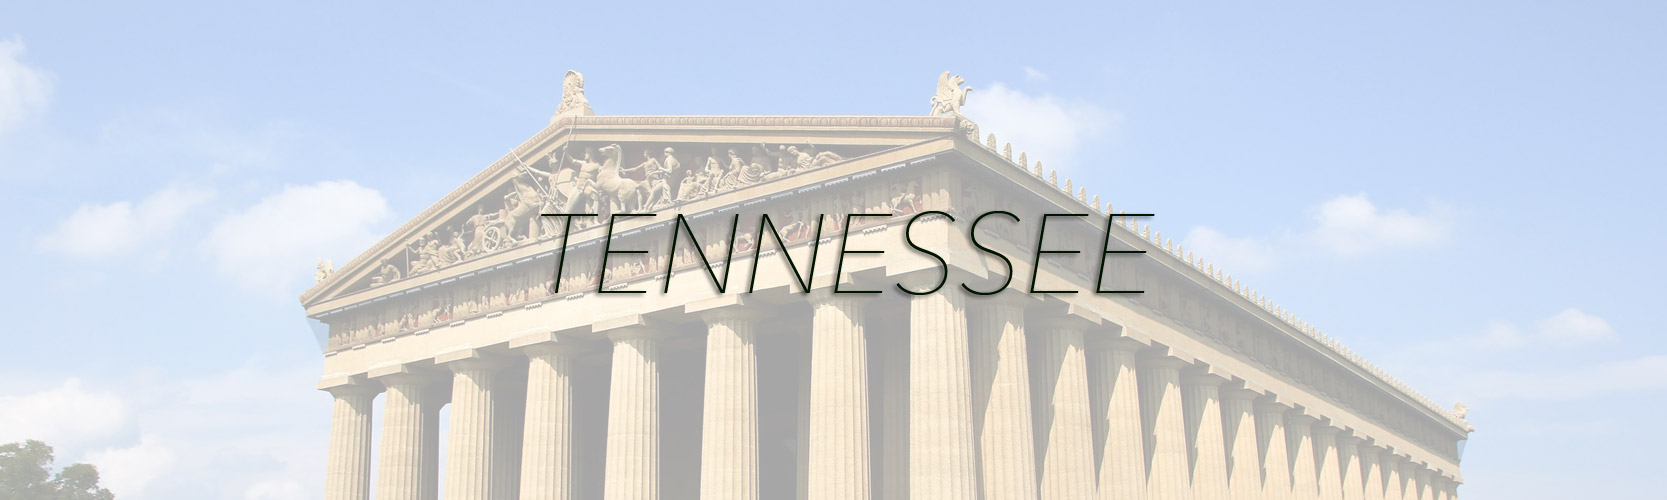 Shipping Futons, Sofa Beds, and Other Futon Shop products to Tennessee